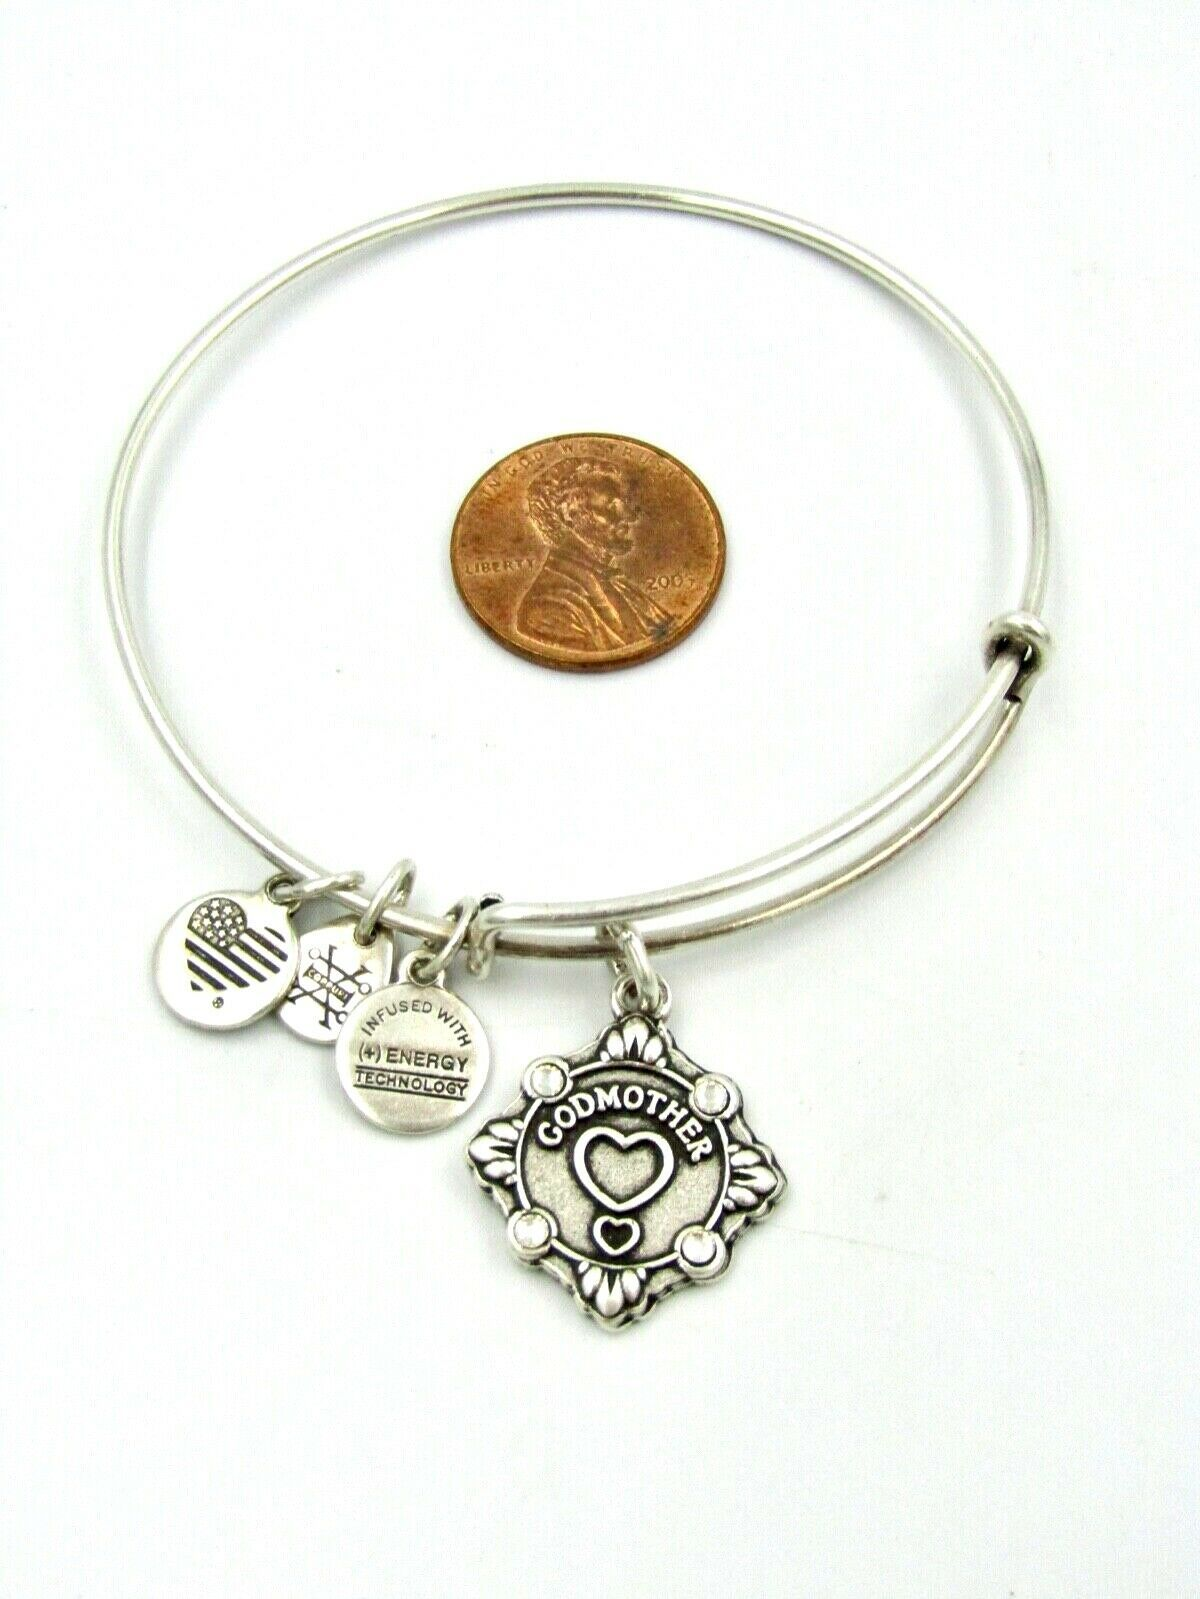 Primary image for Alex And Ani GODMOTHER Charm Bangle Bracelet, Rafaelian Silver Color - Used